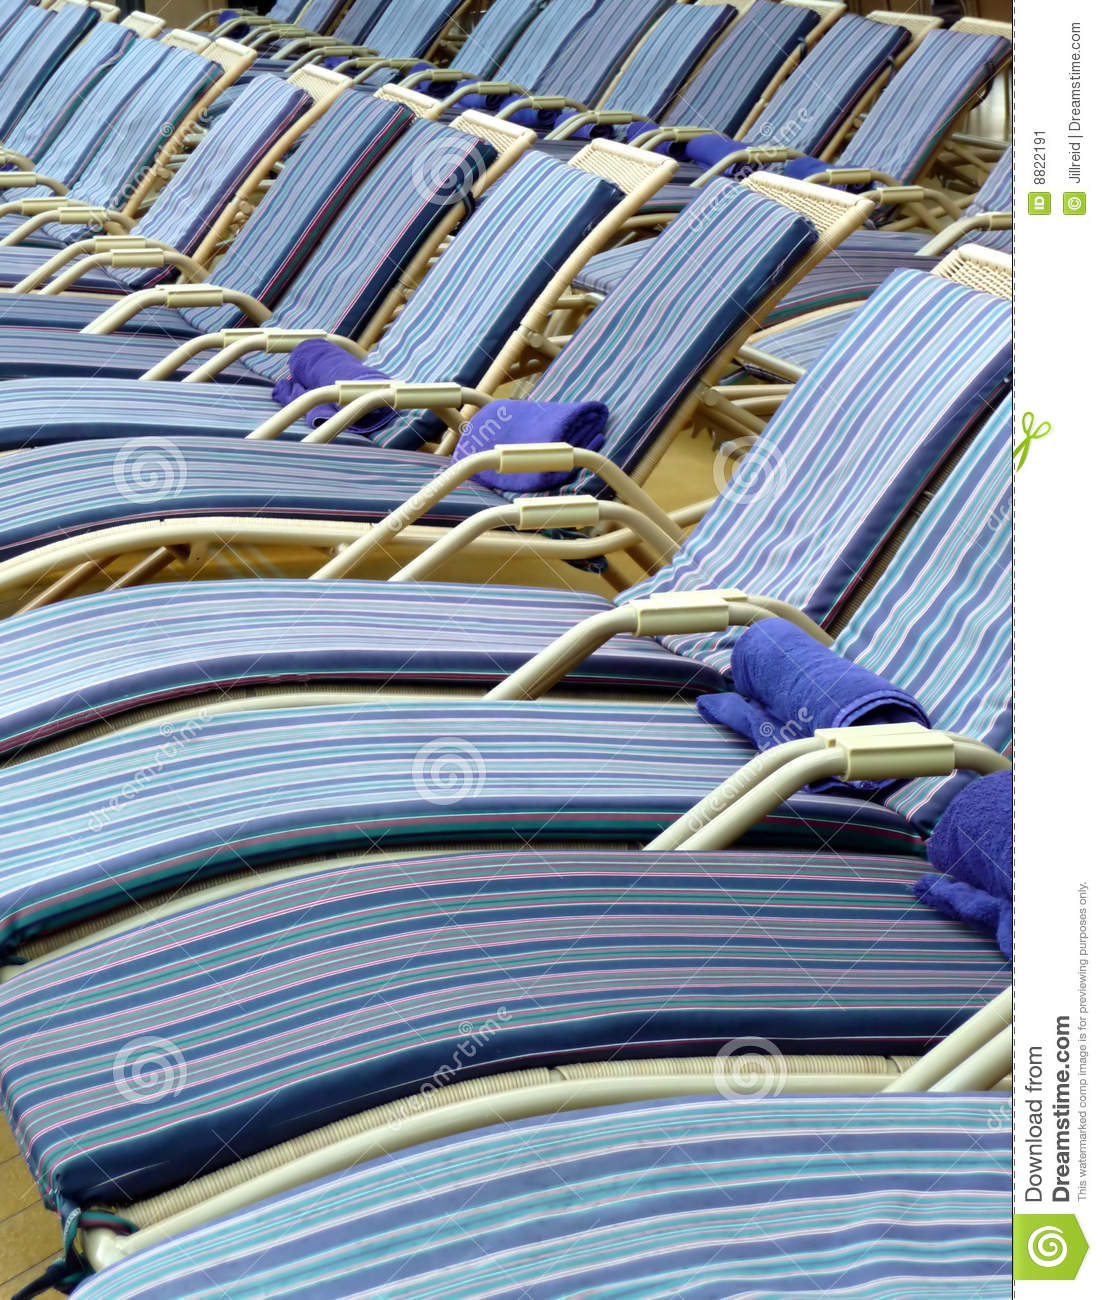 Pool Deck Chairs Pool Deck Chairs On A Cruise Ship Stock Image Image 8822191